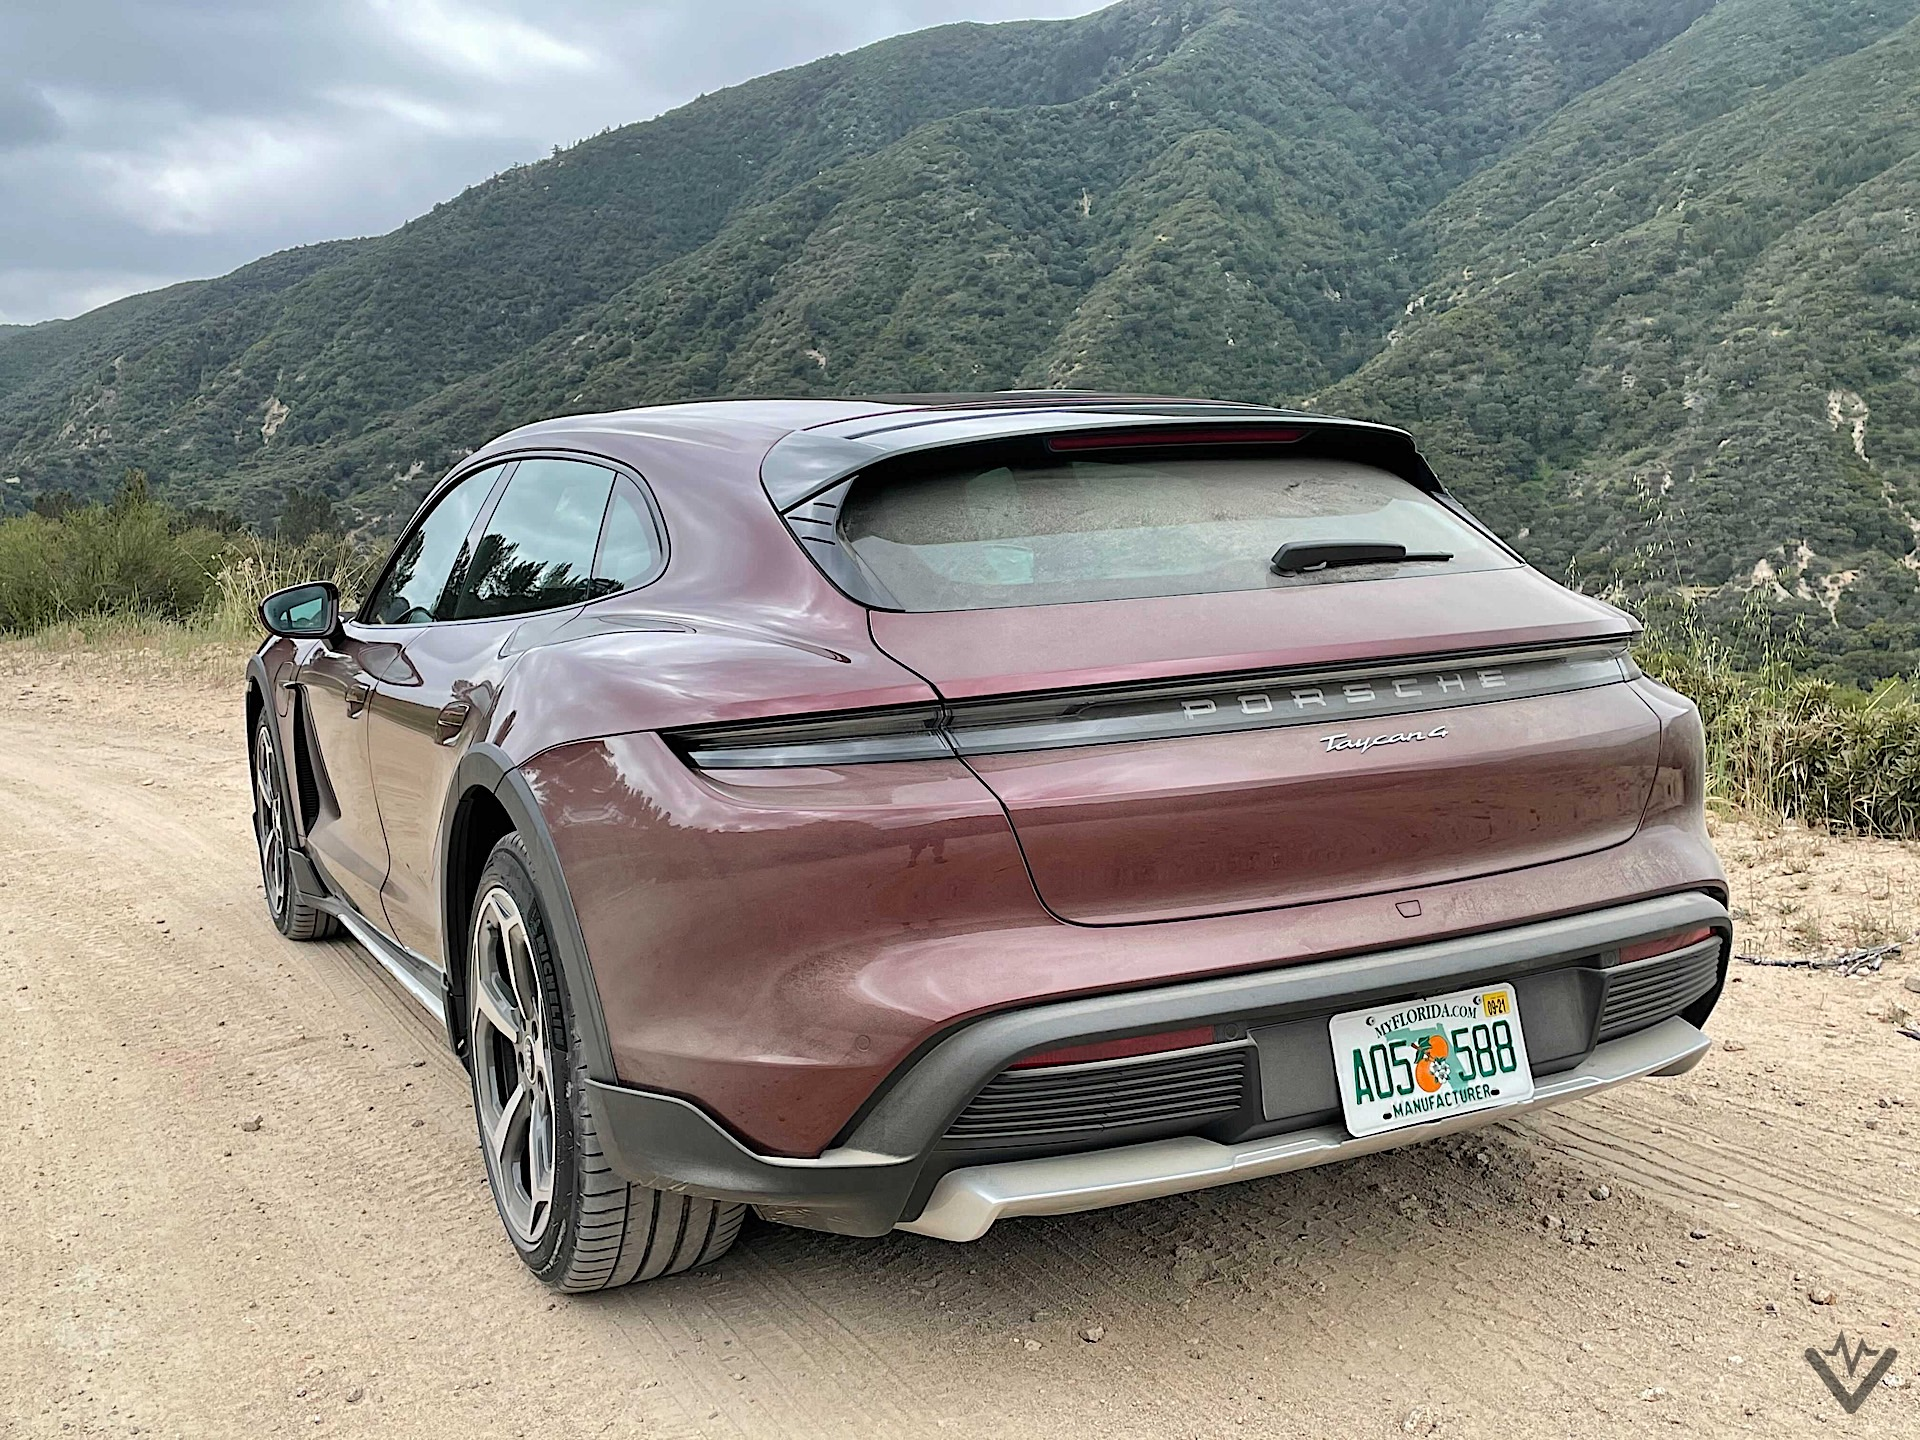 2021 Porsche Taycan Cross Turismo first drive Image from iOS 118 1